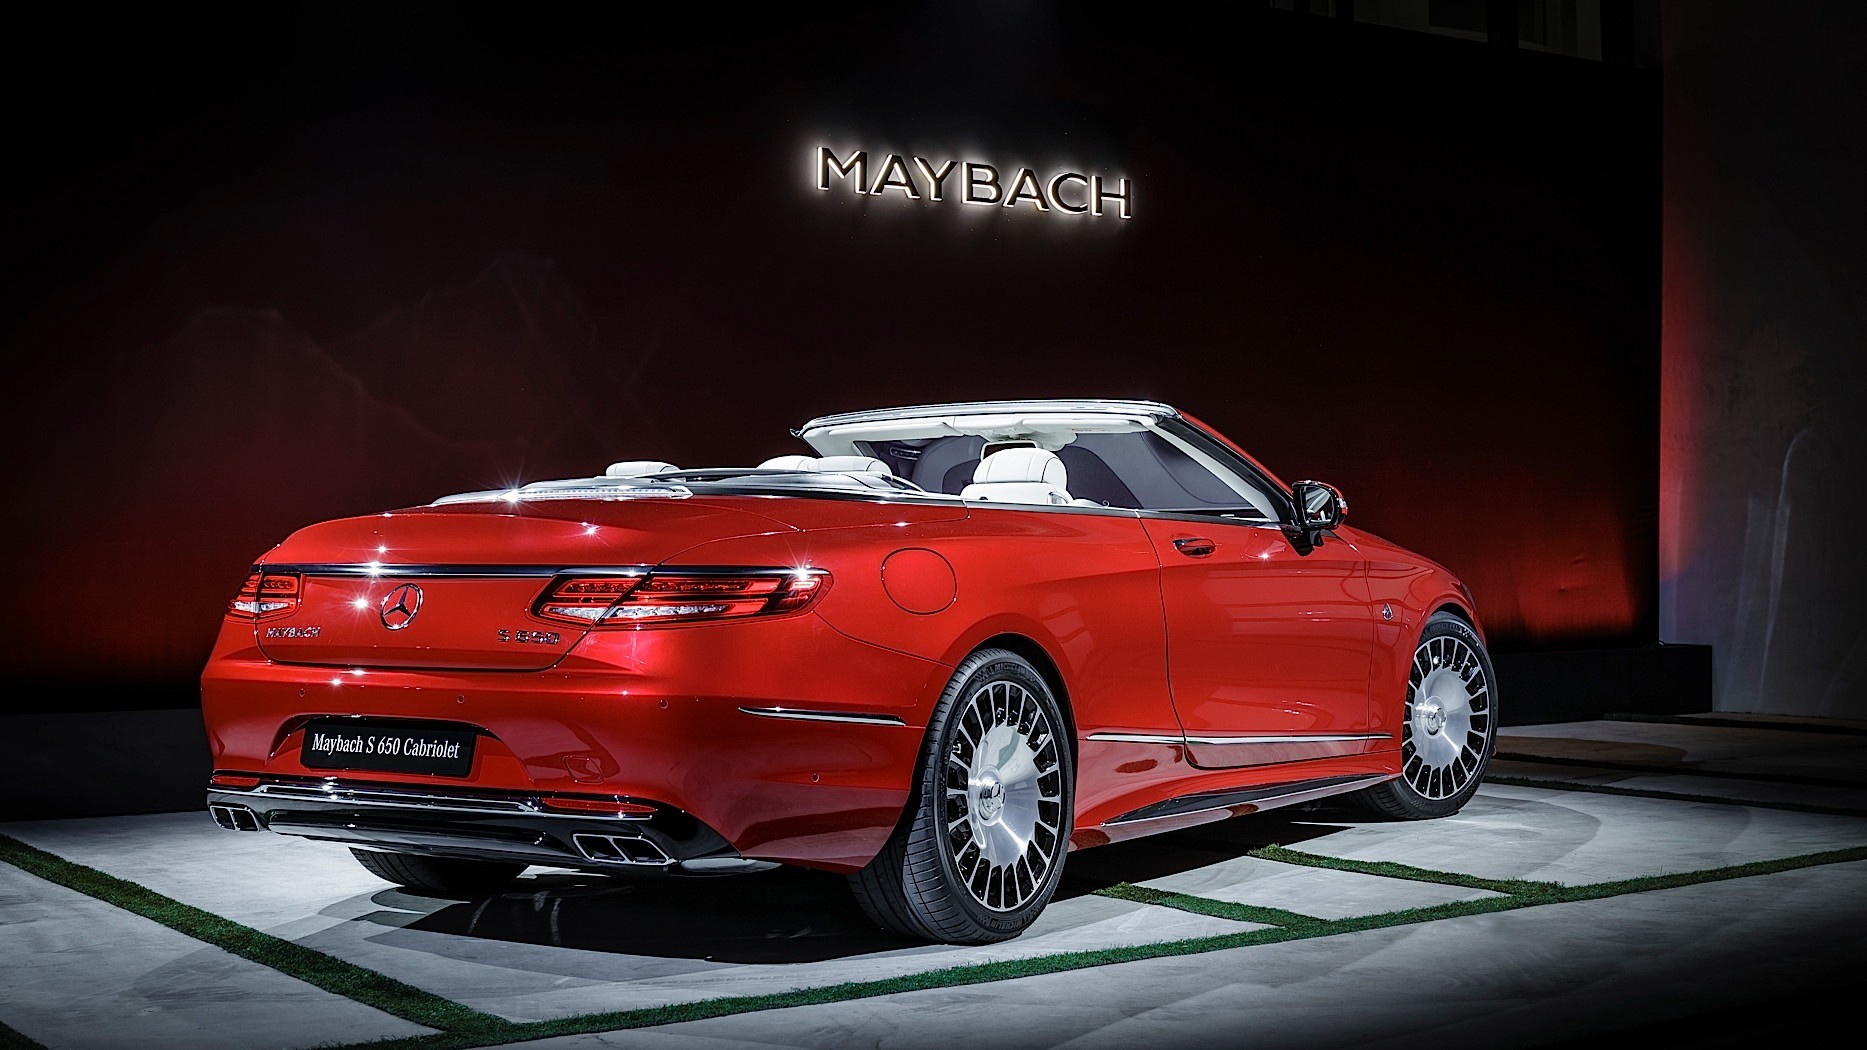 Mercedes Benz Officially Discontinues The Maybach